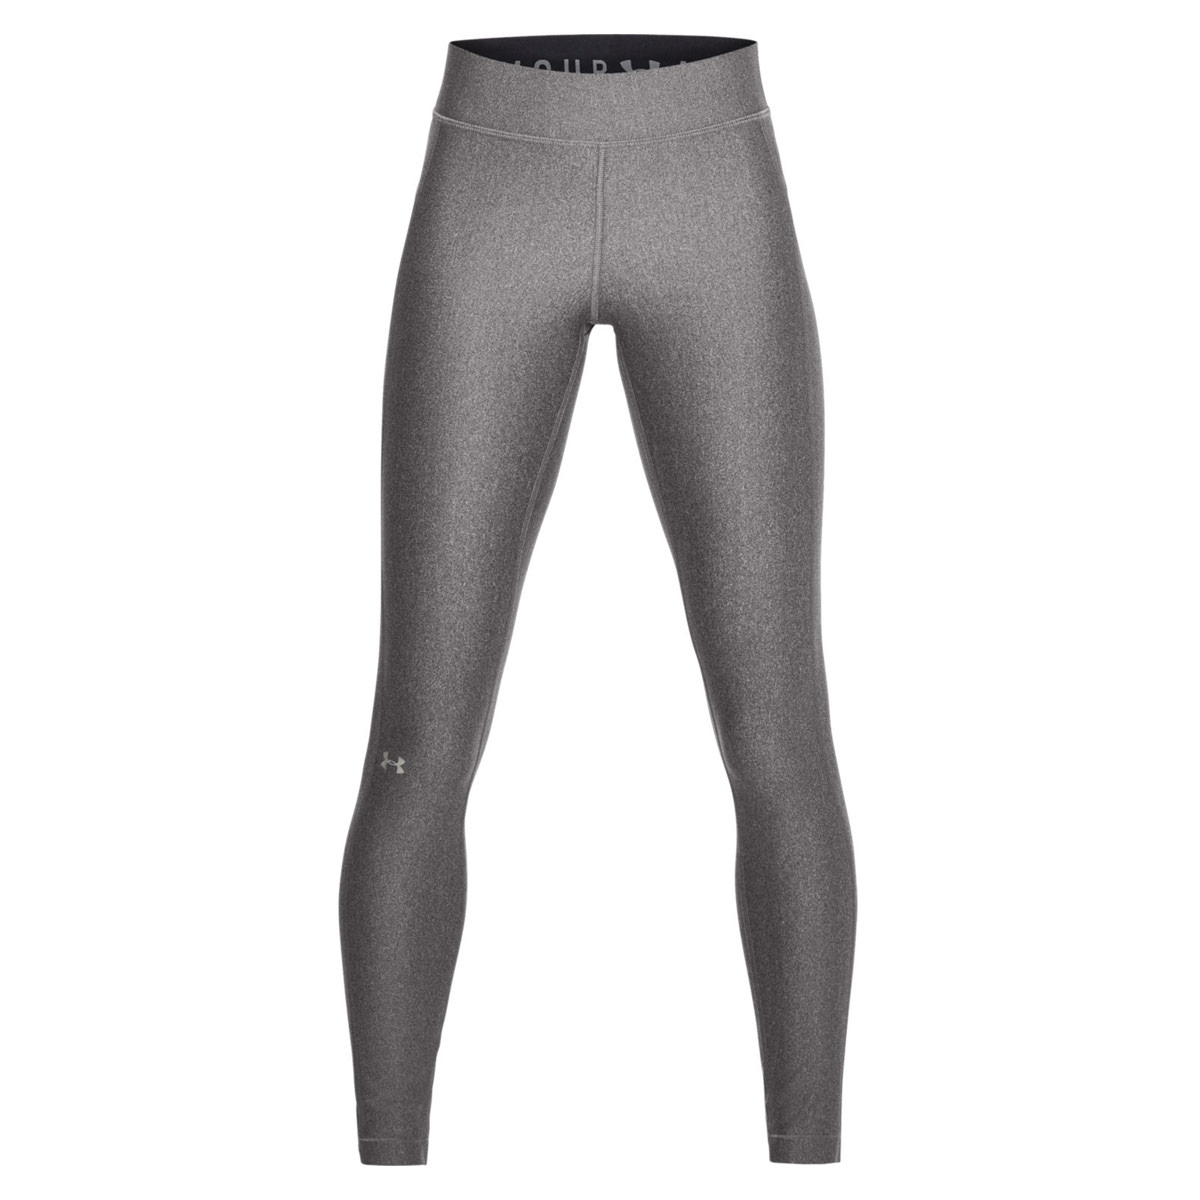 21a775faf13c13 Under Armour HeatGear Armour Legging - Running trousers for Women - Grey |  21RUN